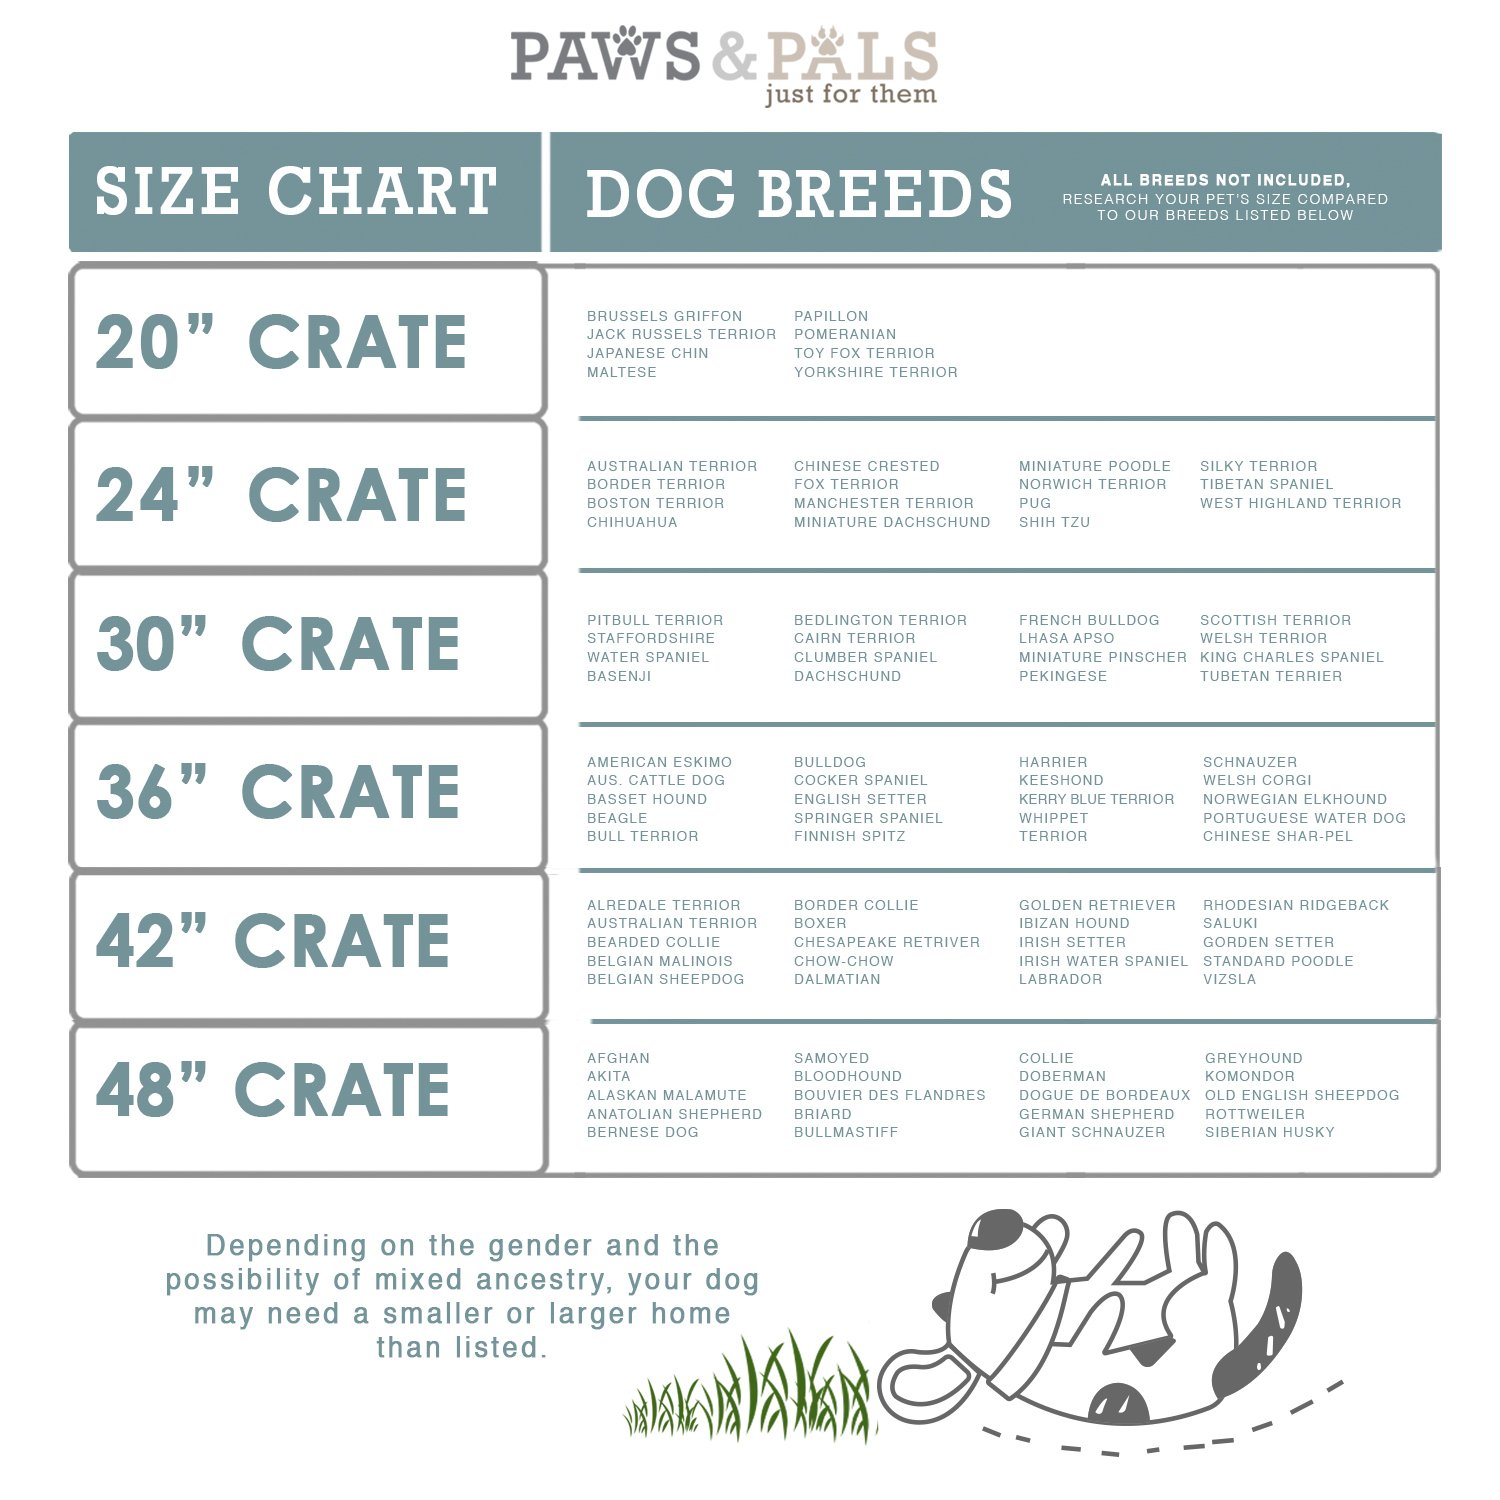 Typical Wire Dog Crate Sizing (Source: Paws & Pals, Amazon)